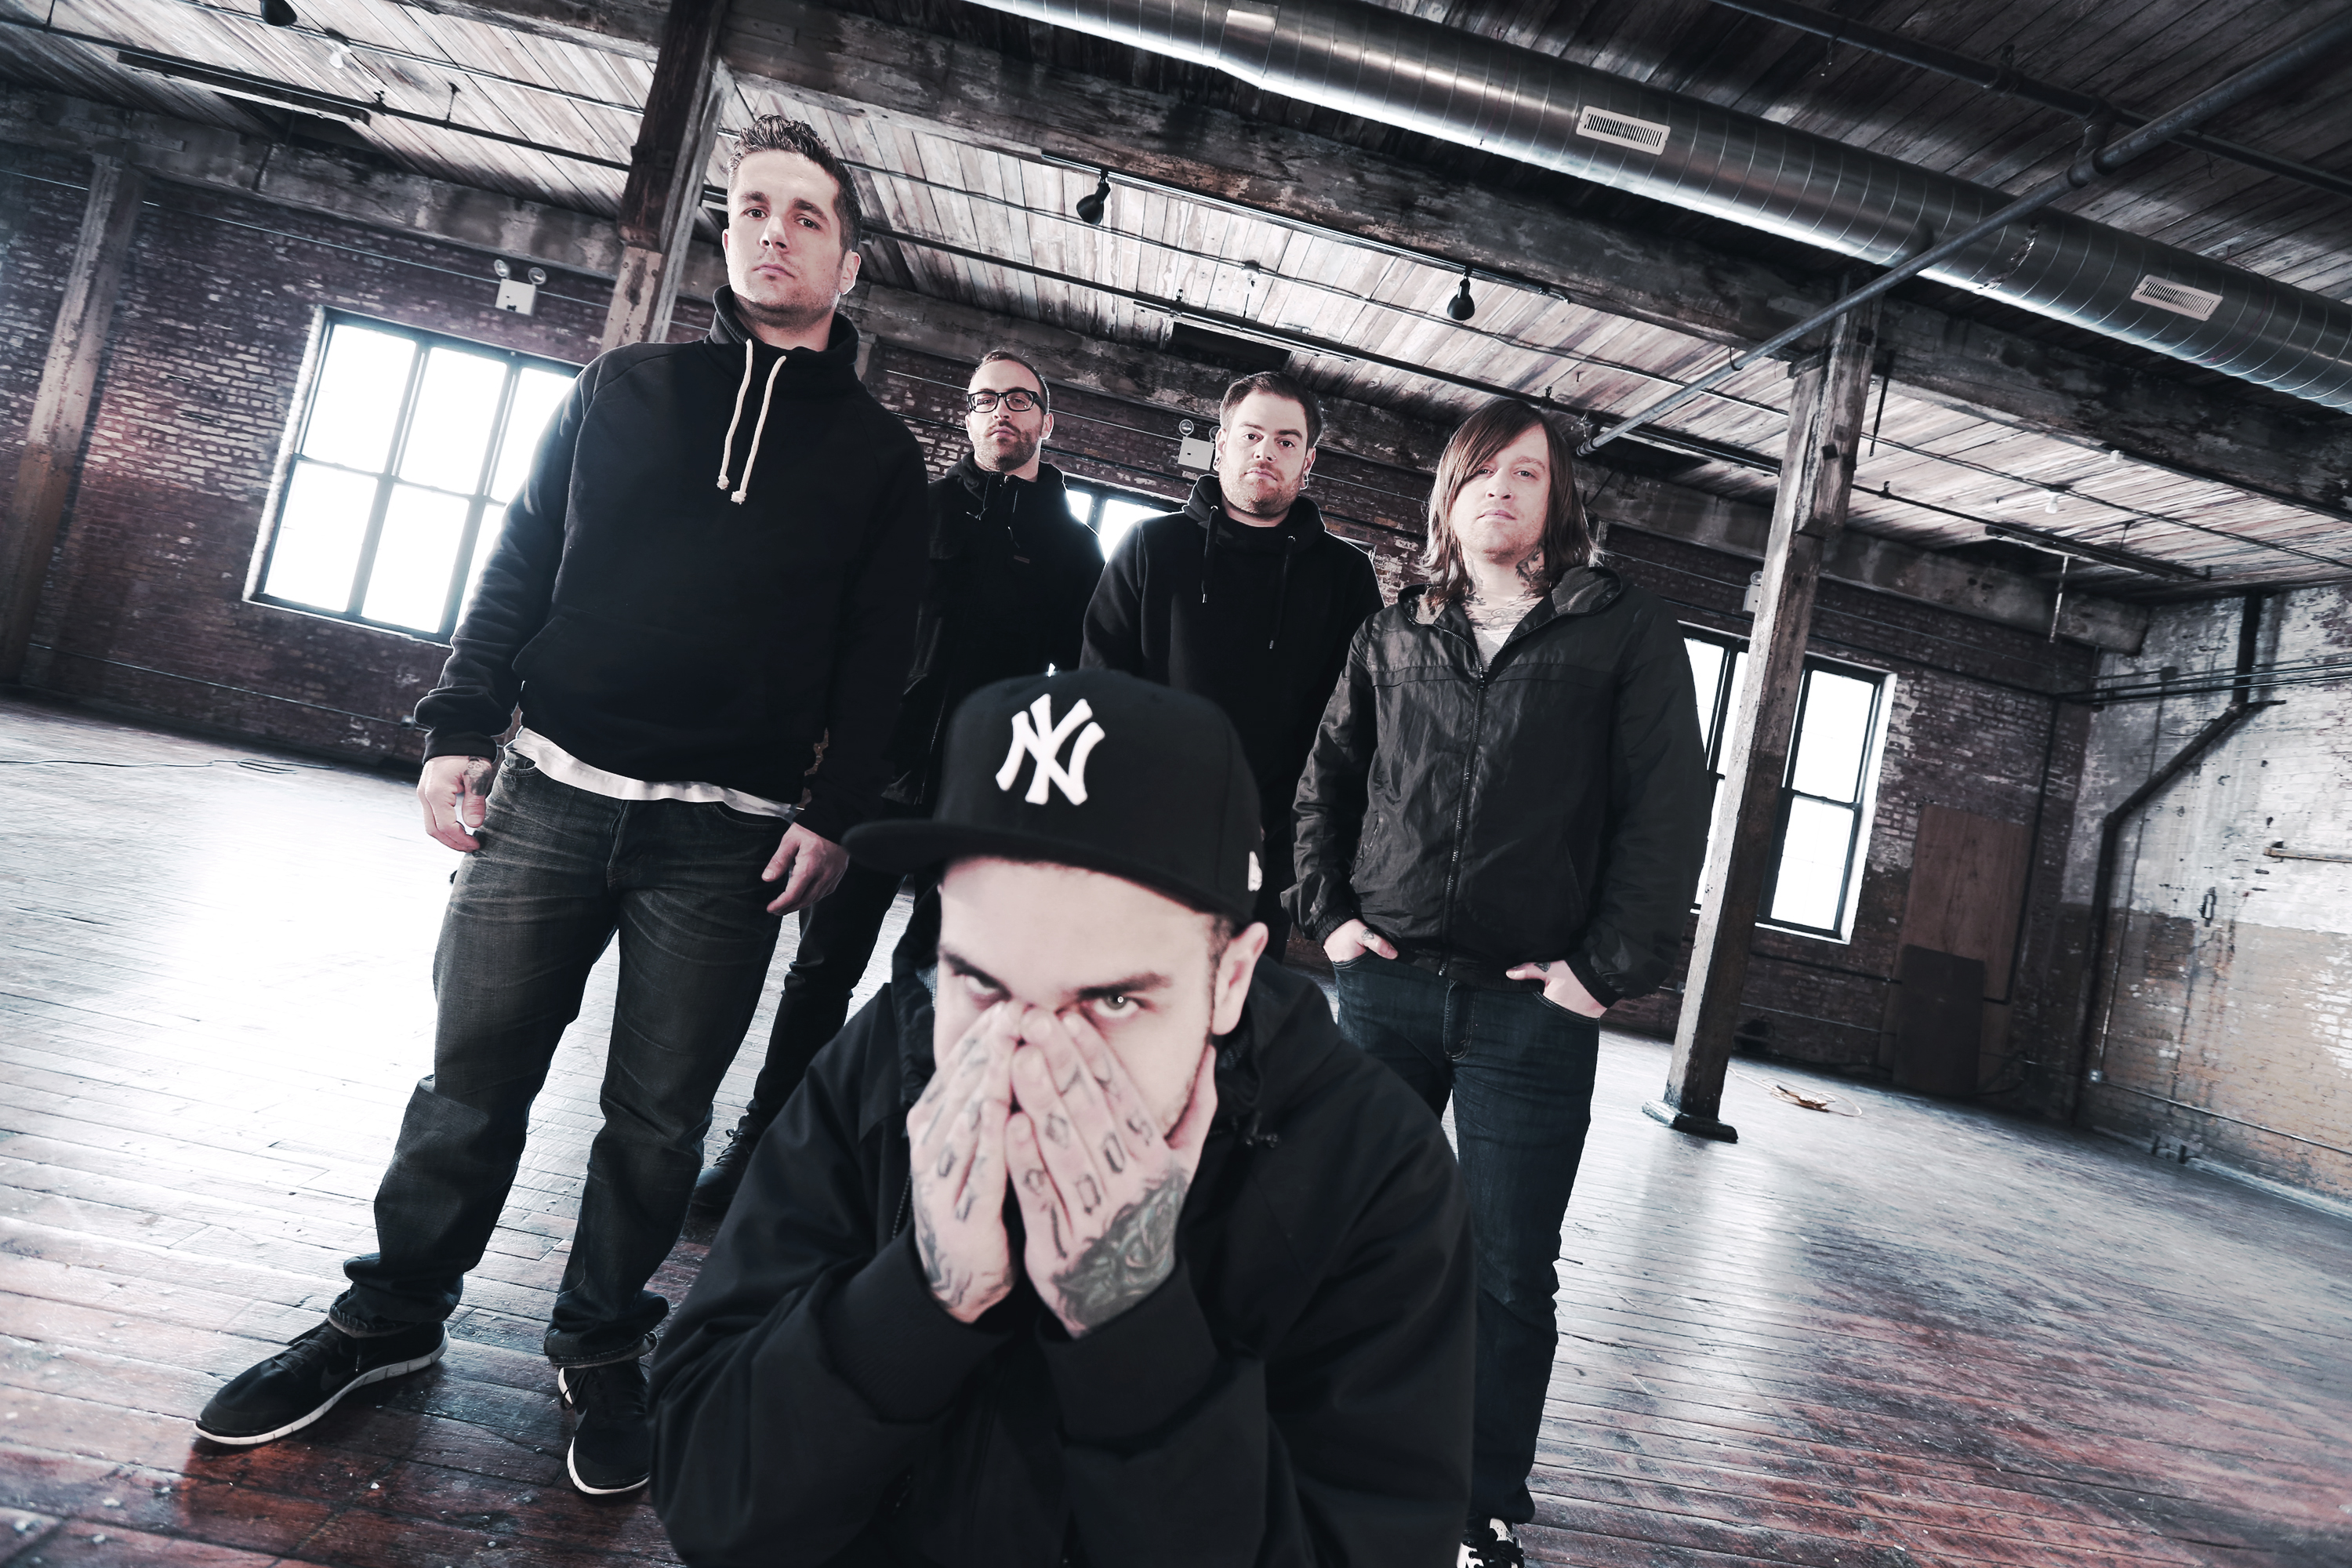 INTERVIEW: EMMURE